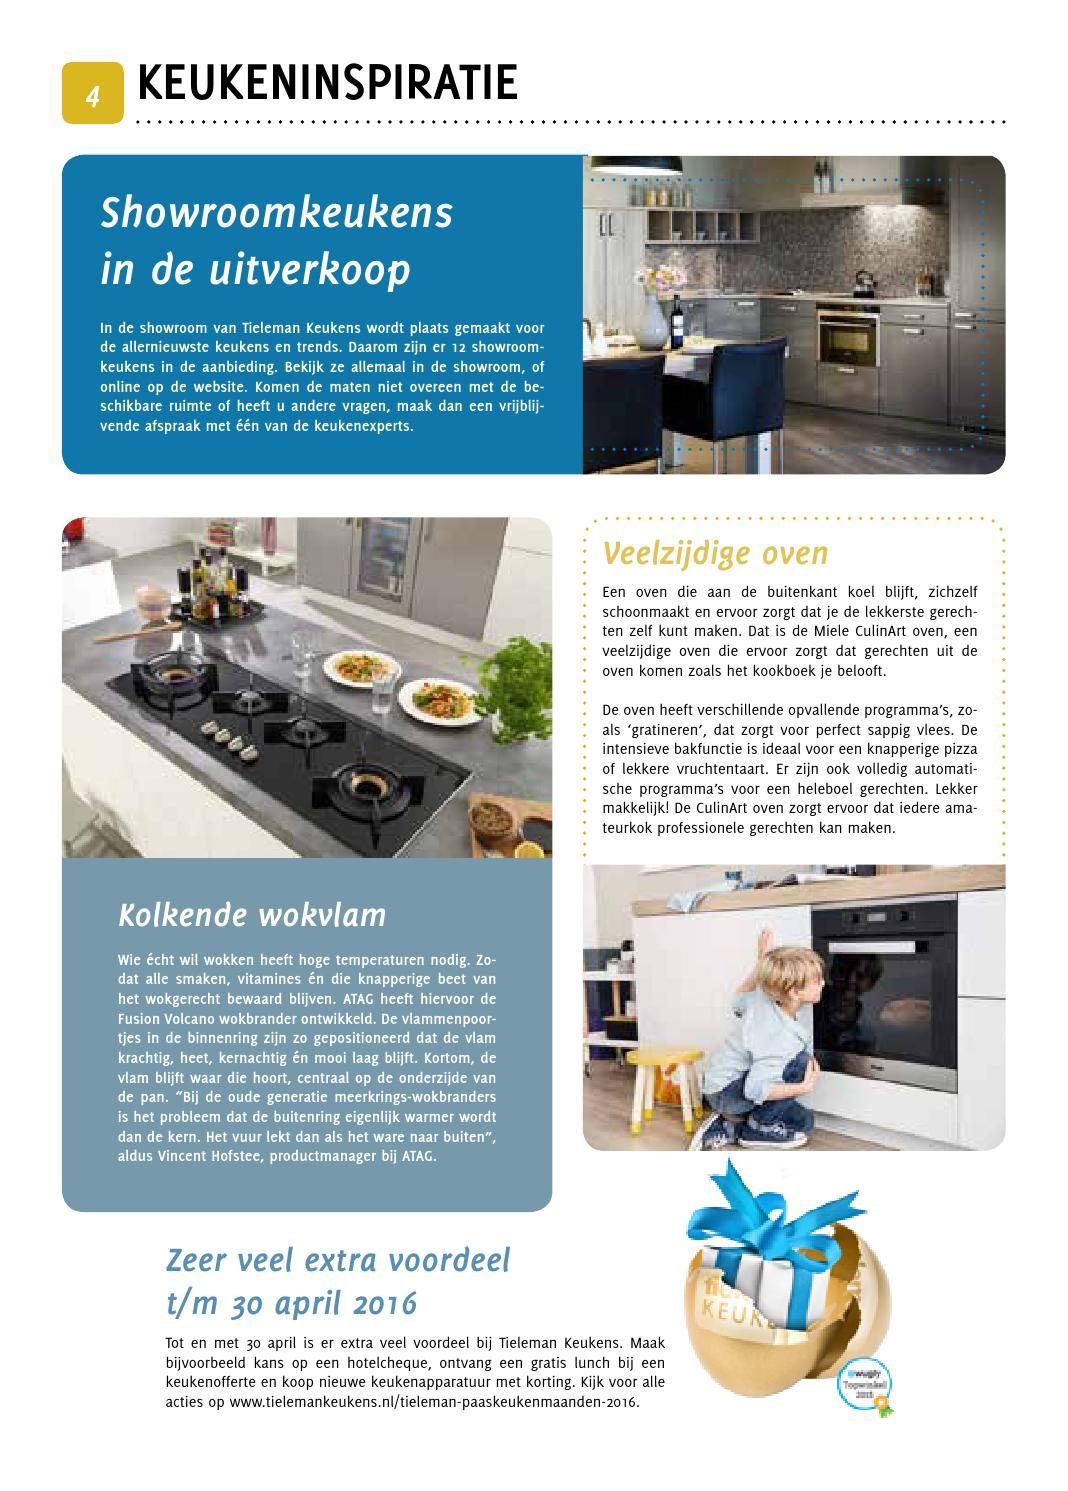 Online Keuken Offerte Over Flakkee Editie April 2016